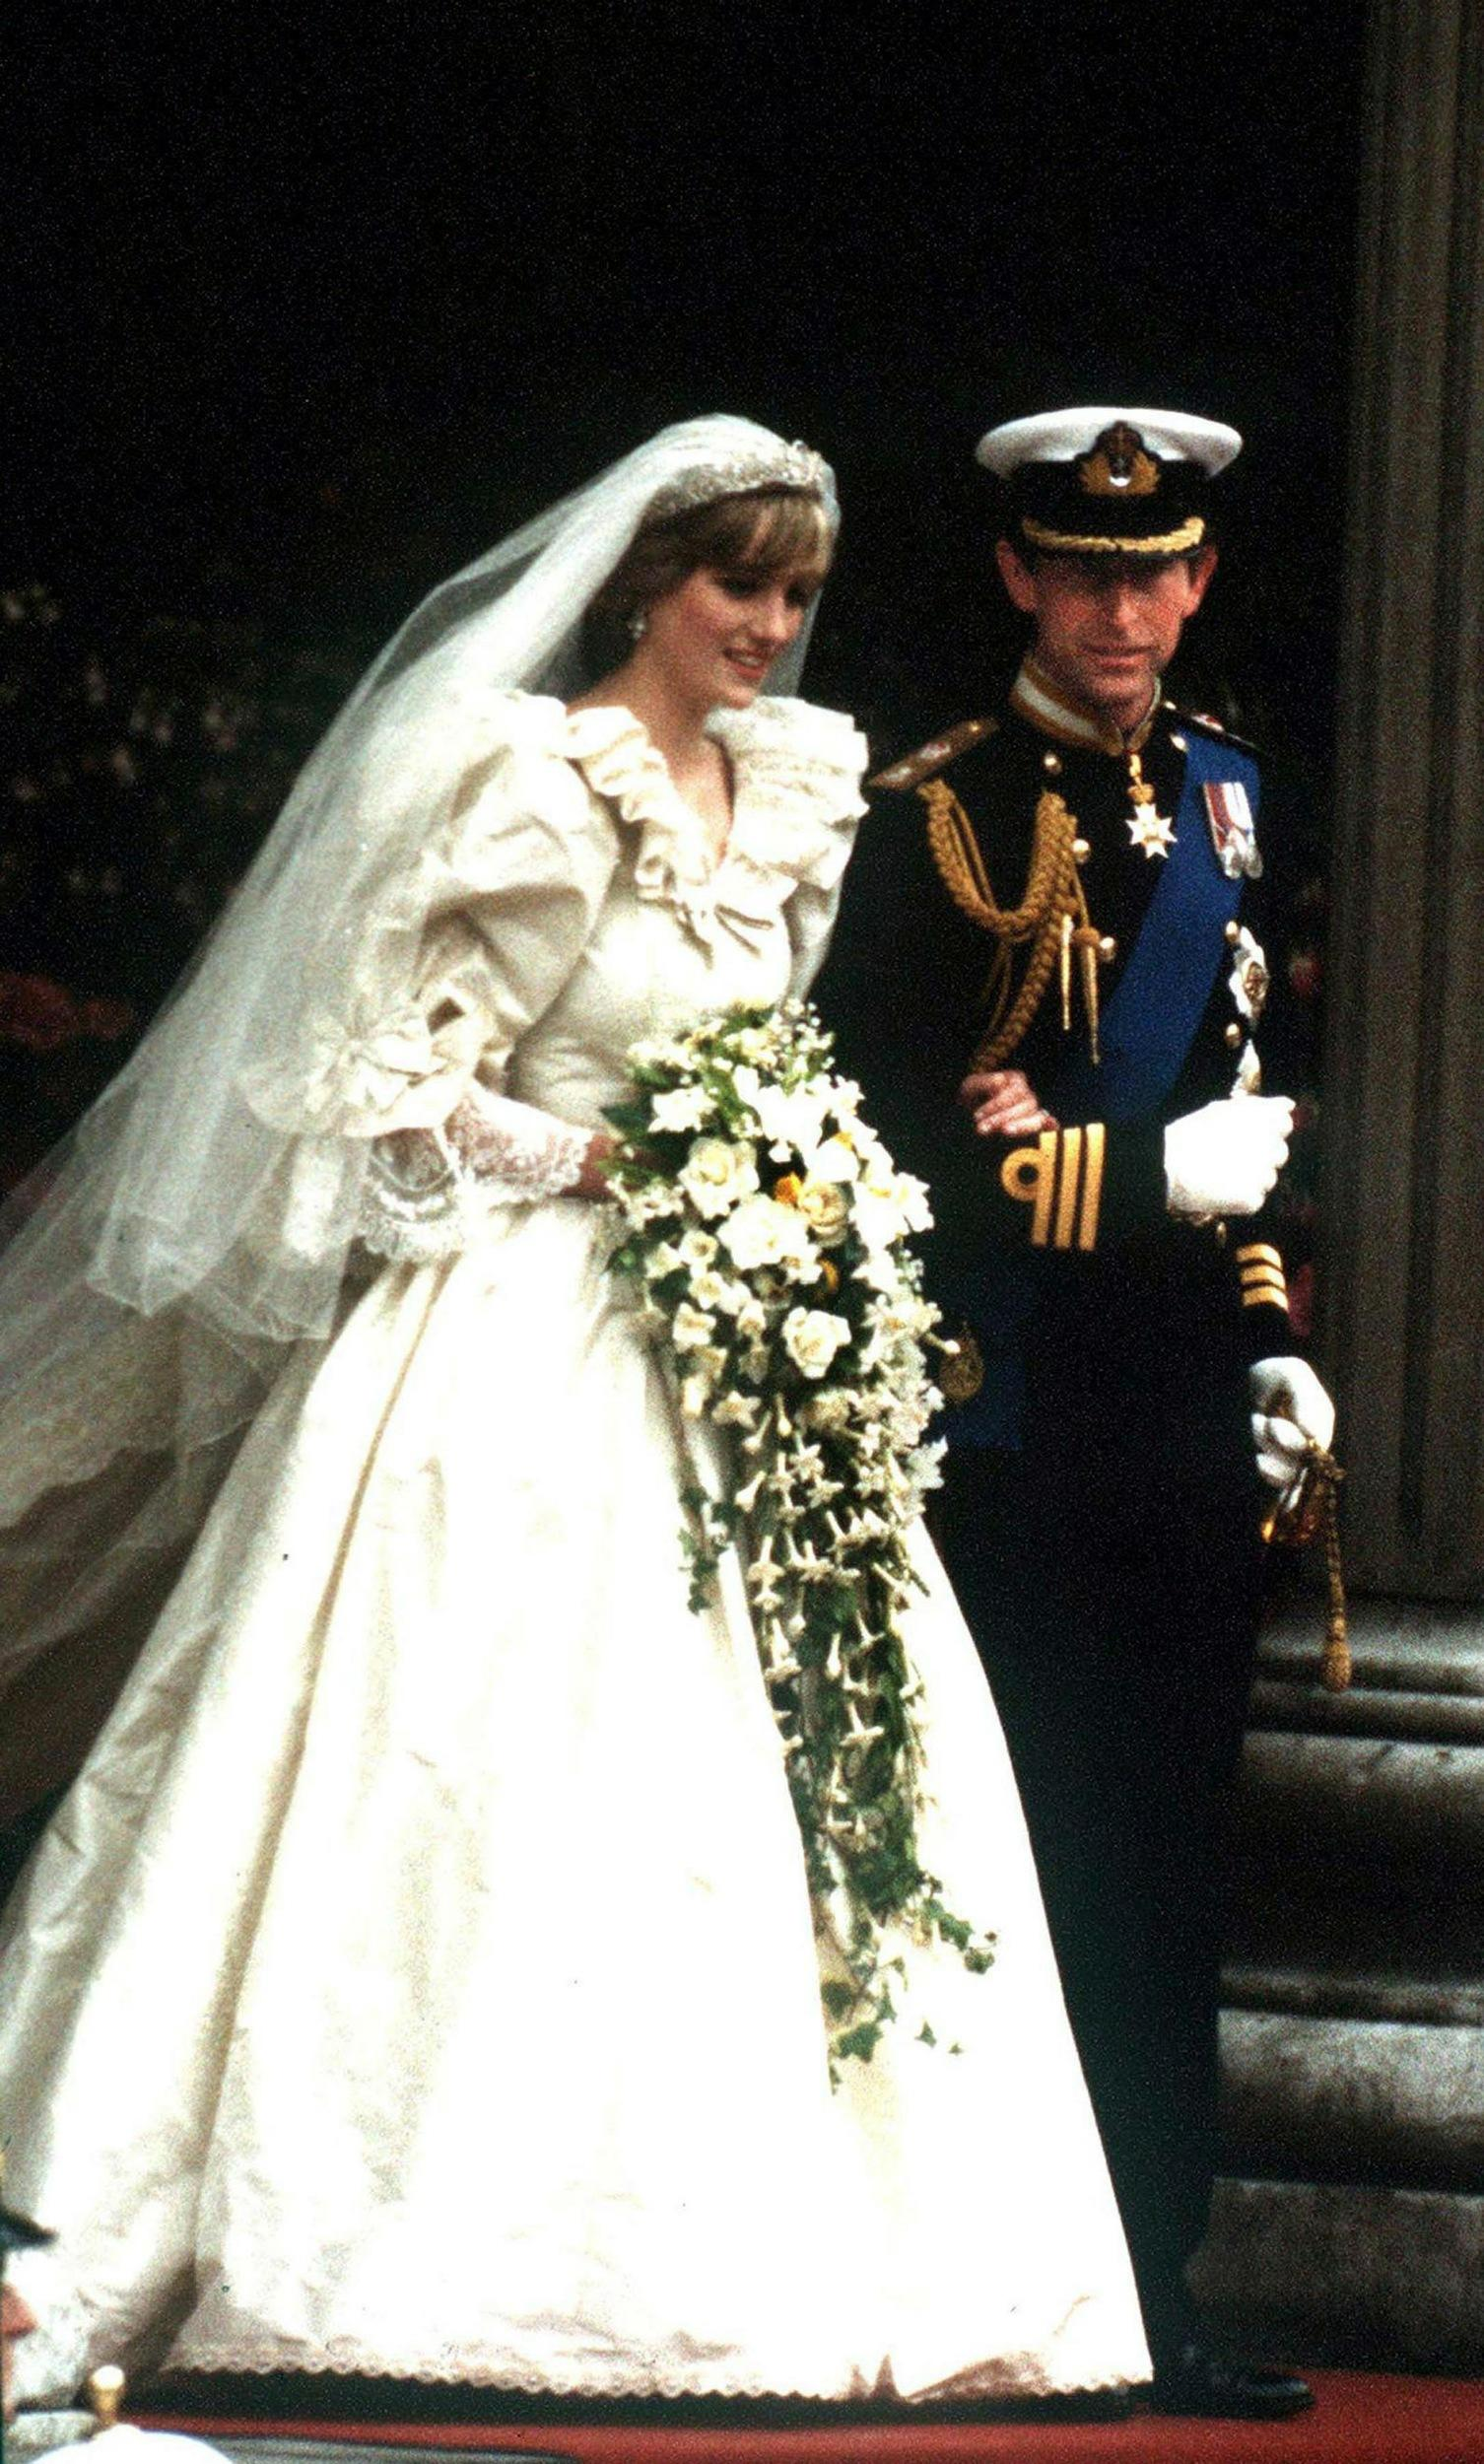 (FILE PHOTO) The Prince and Princess of Wales leave St Paul's Cathedral after their wedding, 29th July 1981. She wears a wedding dress by David and Elizabeth Emmanuel and the Spencer family tiara.